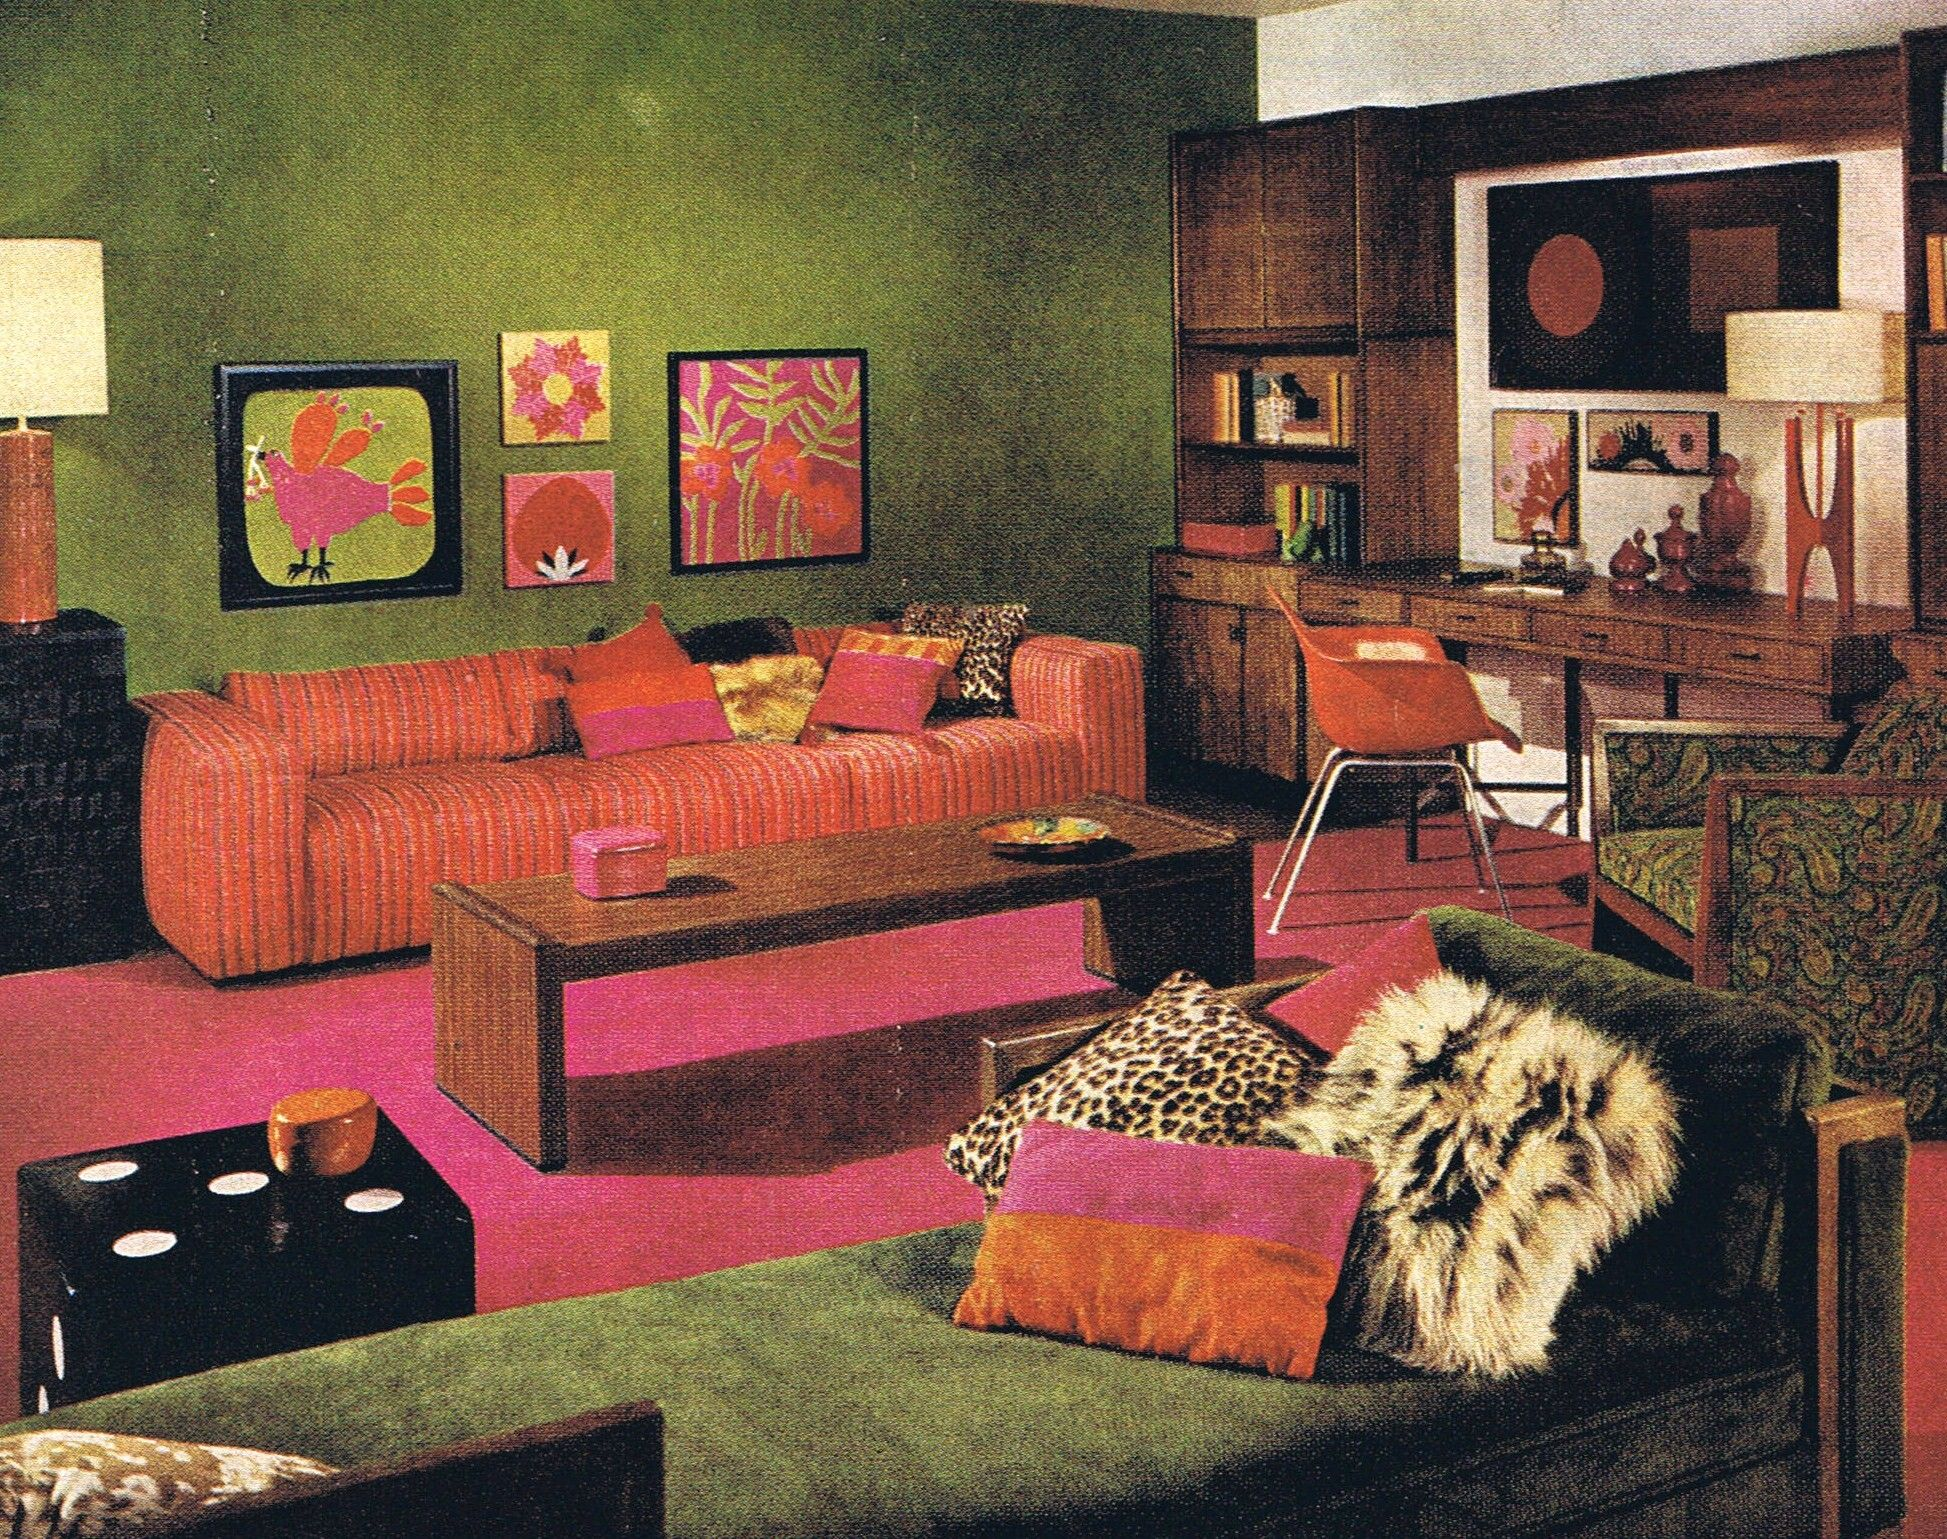 American Modern Style Better Homes And Gardens 1967 Mid Century Modern Interior Design